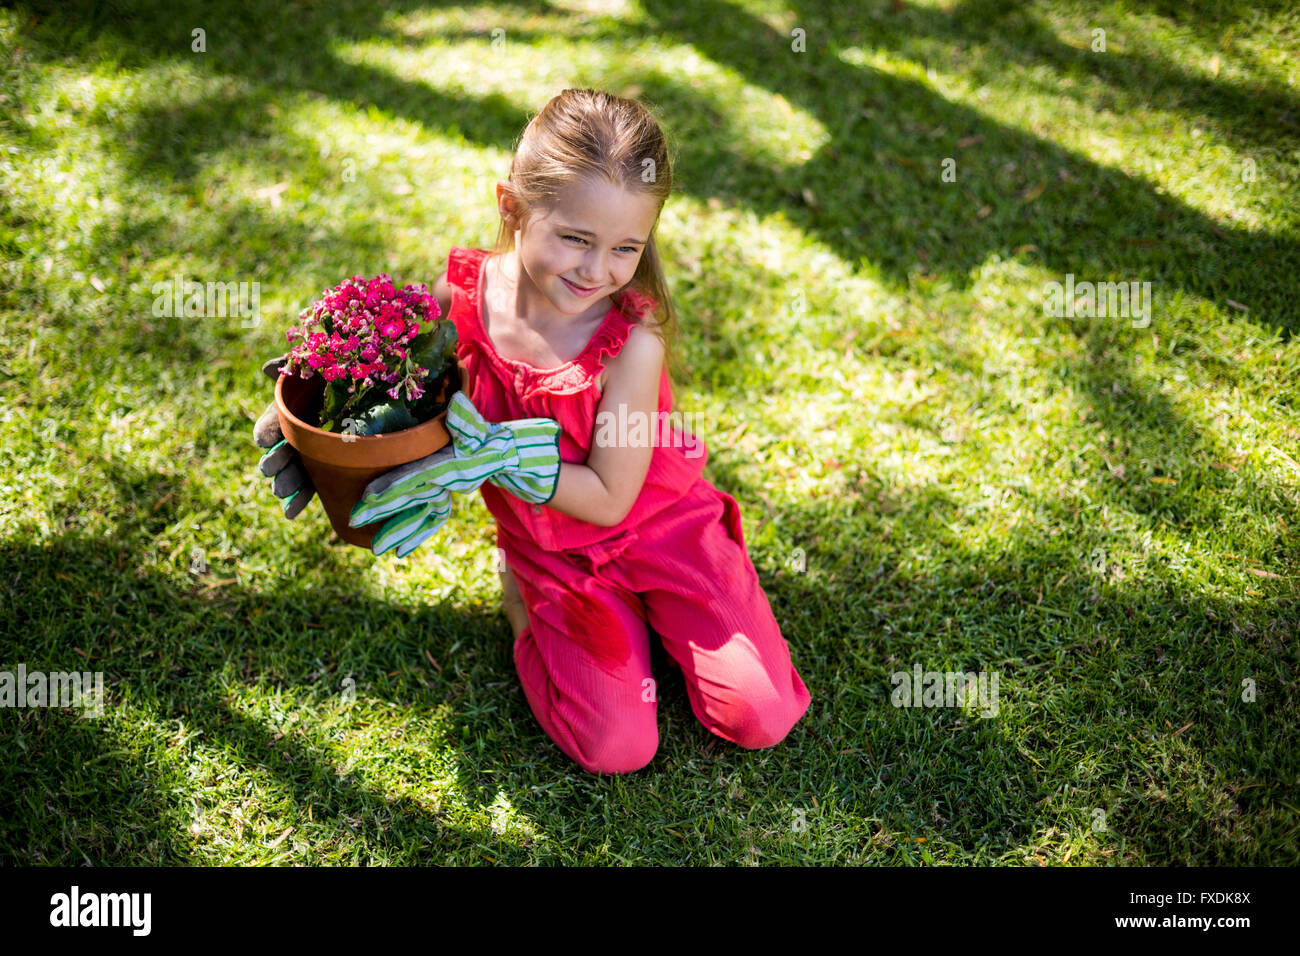 Girl holding flower pot while sitting in yard - Stock Image